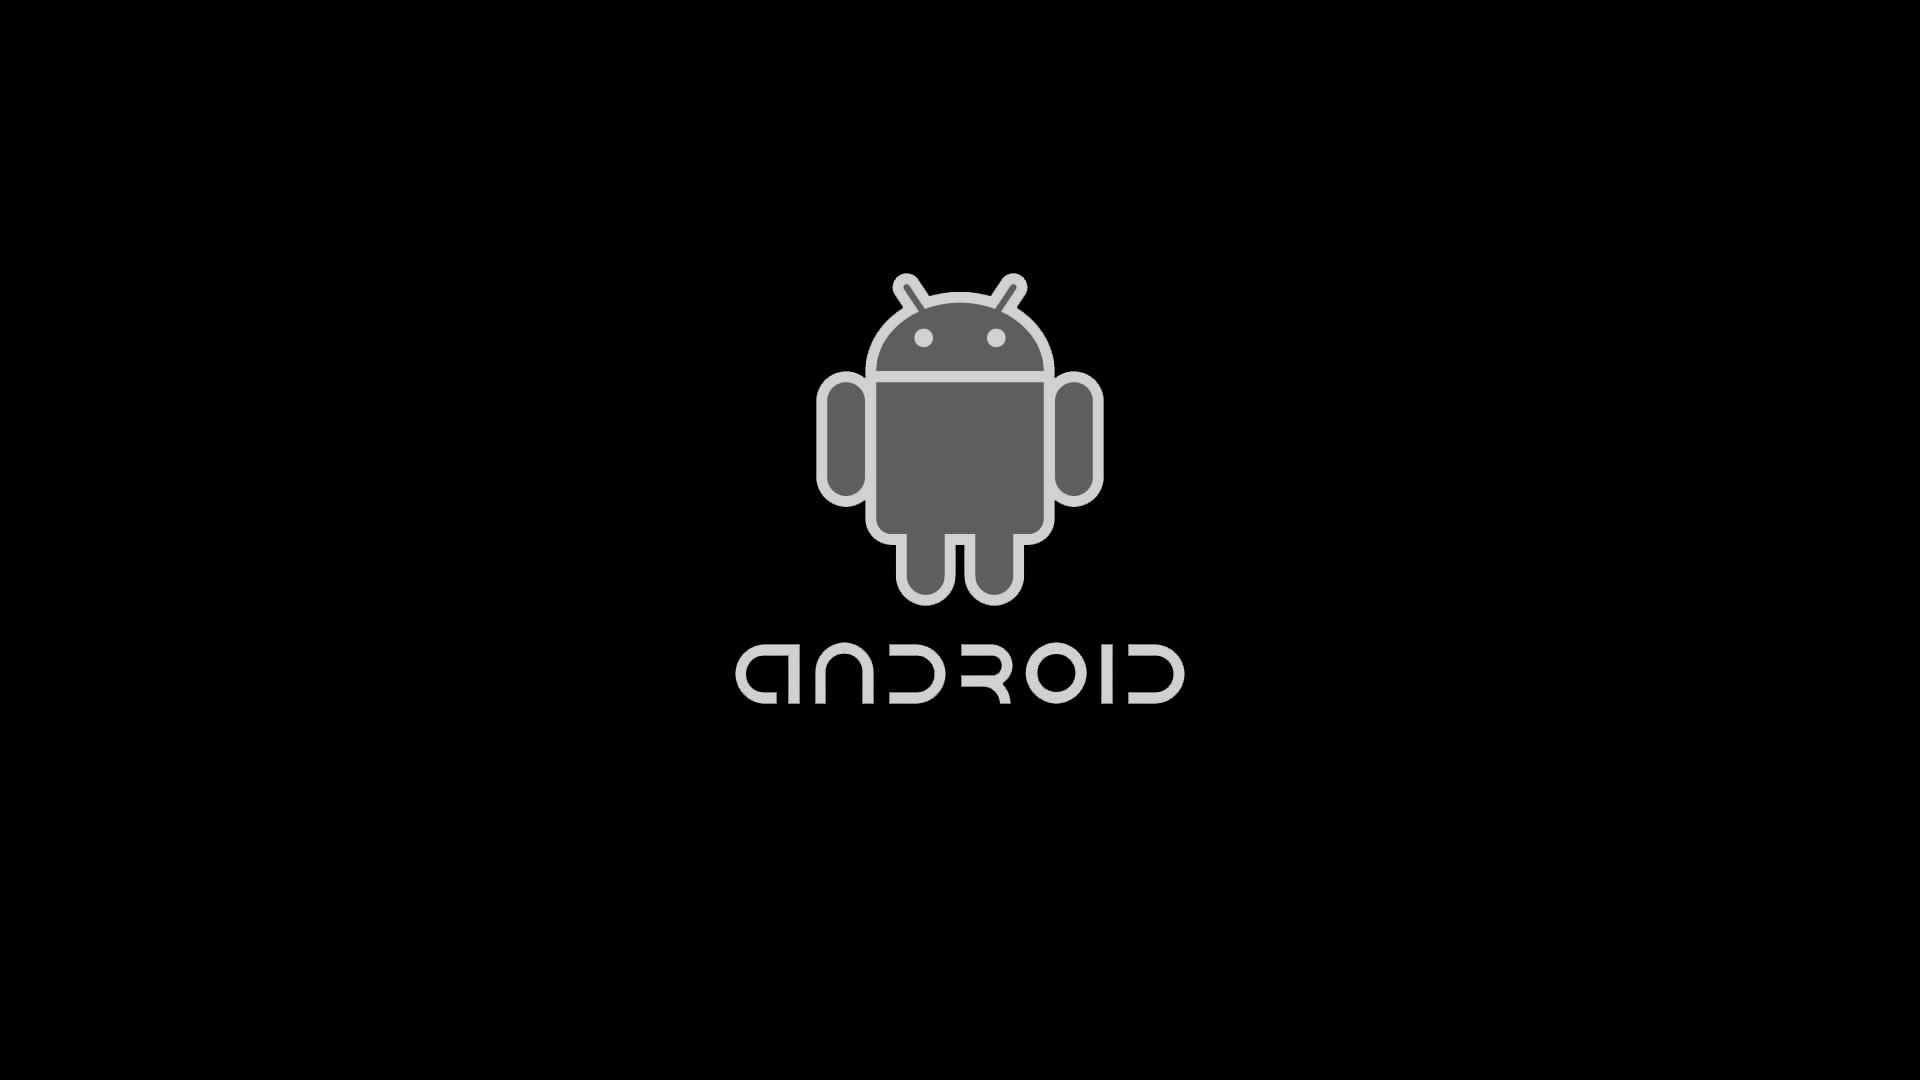 android black wallpapers 1920x1080 wallpaper | wallpaperlepi